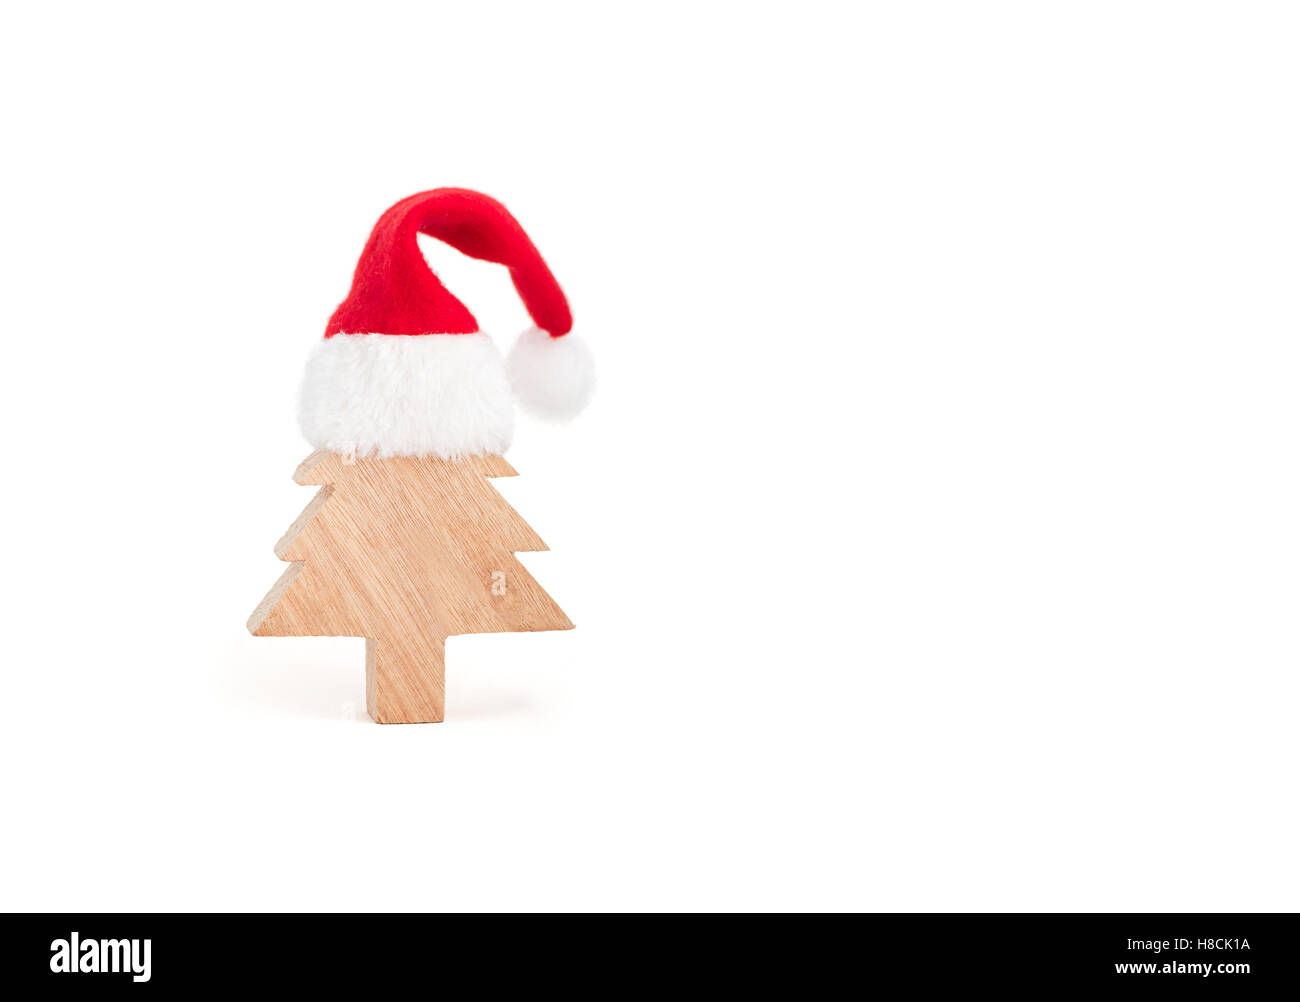 1a3df9f6adfe1 A handmade wooden christmas tree wearing a tiny red christmas hat on white  background. Silly